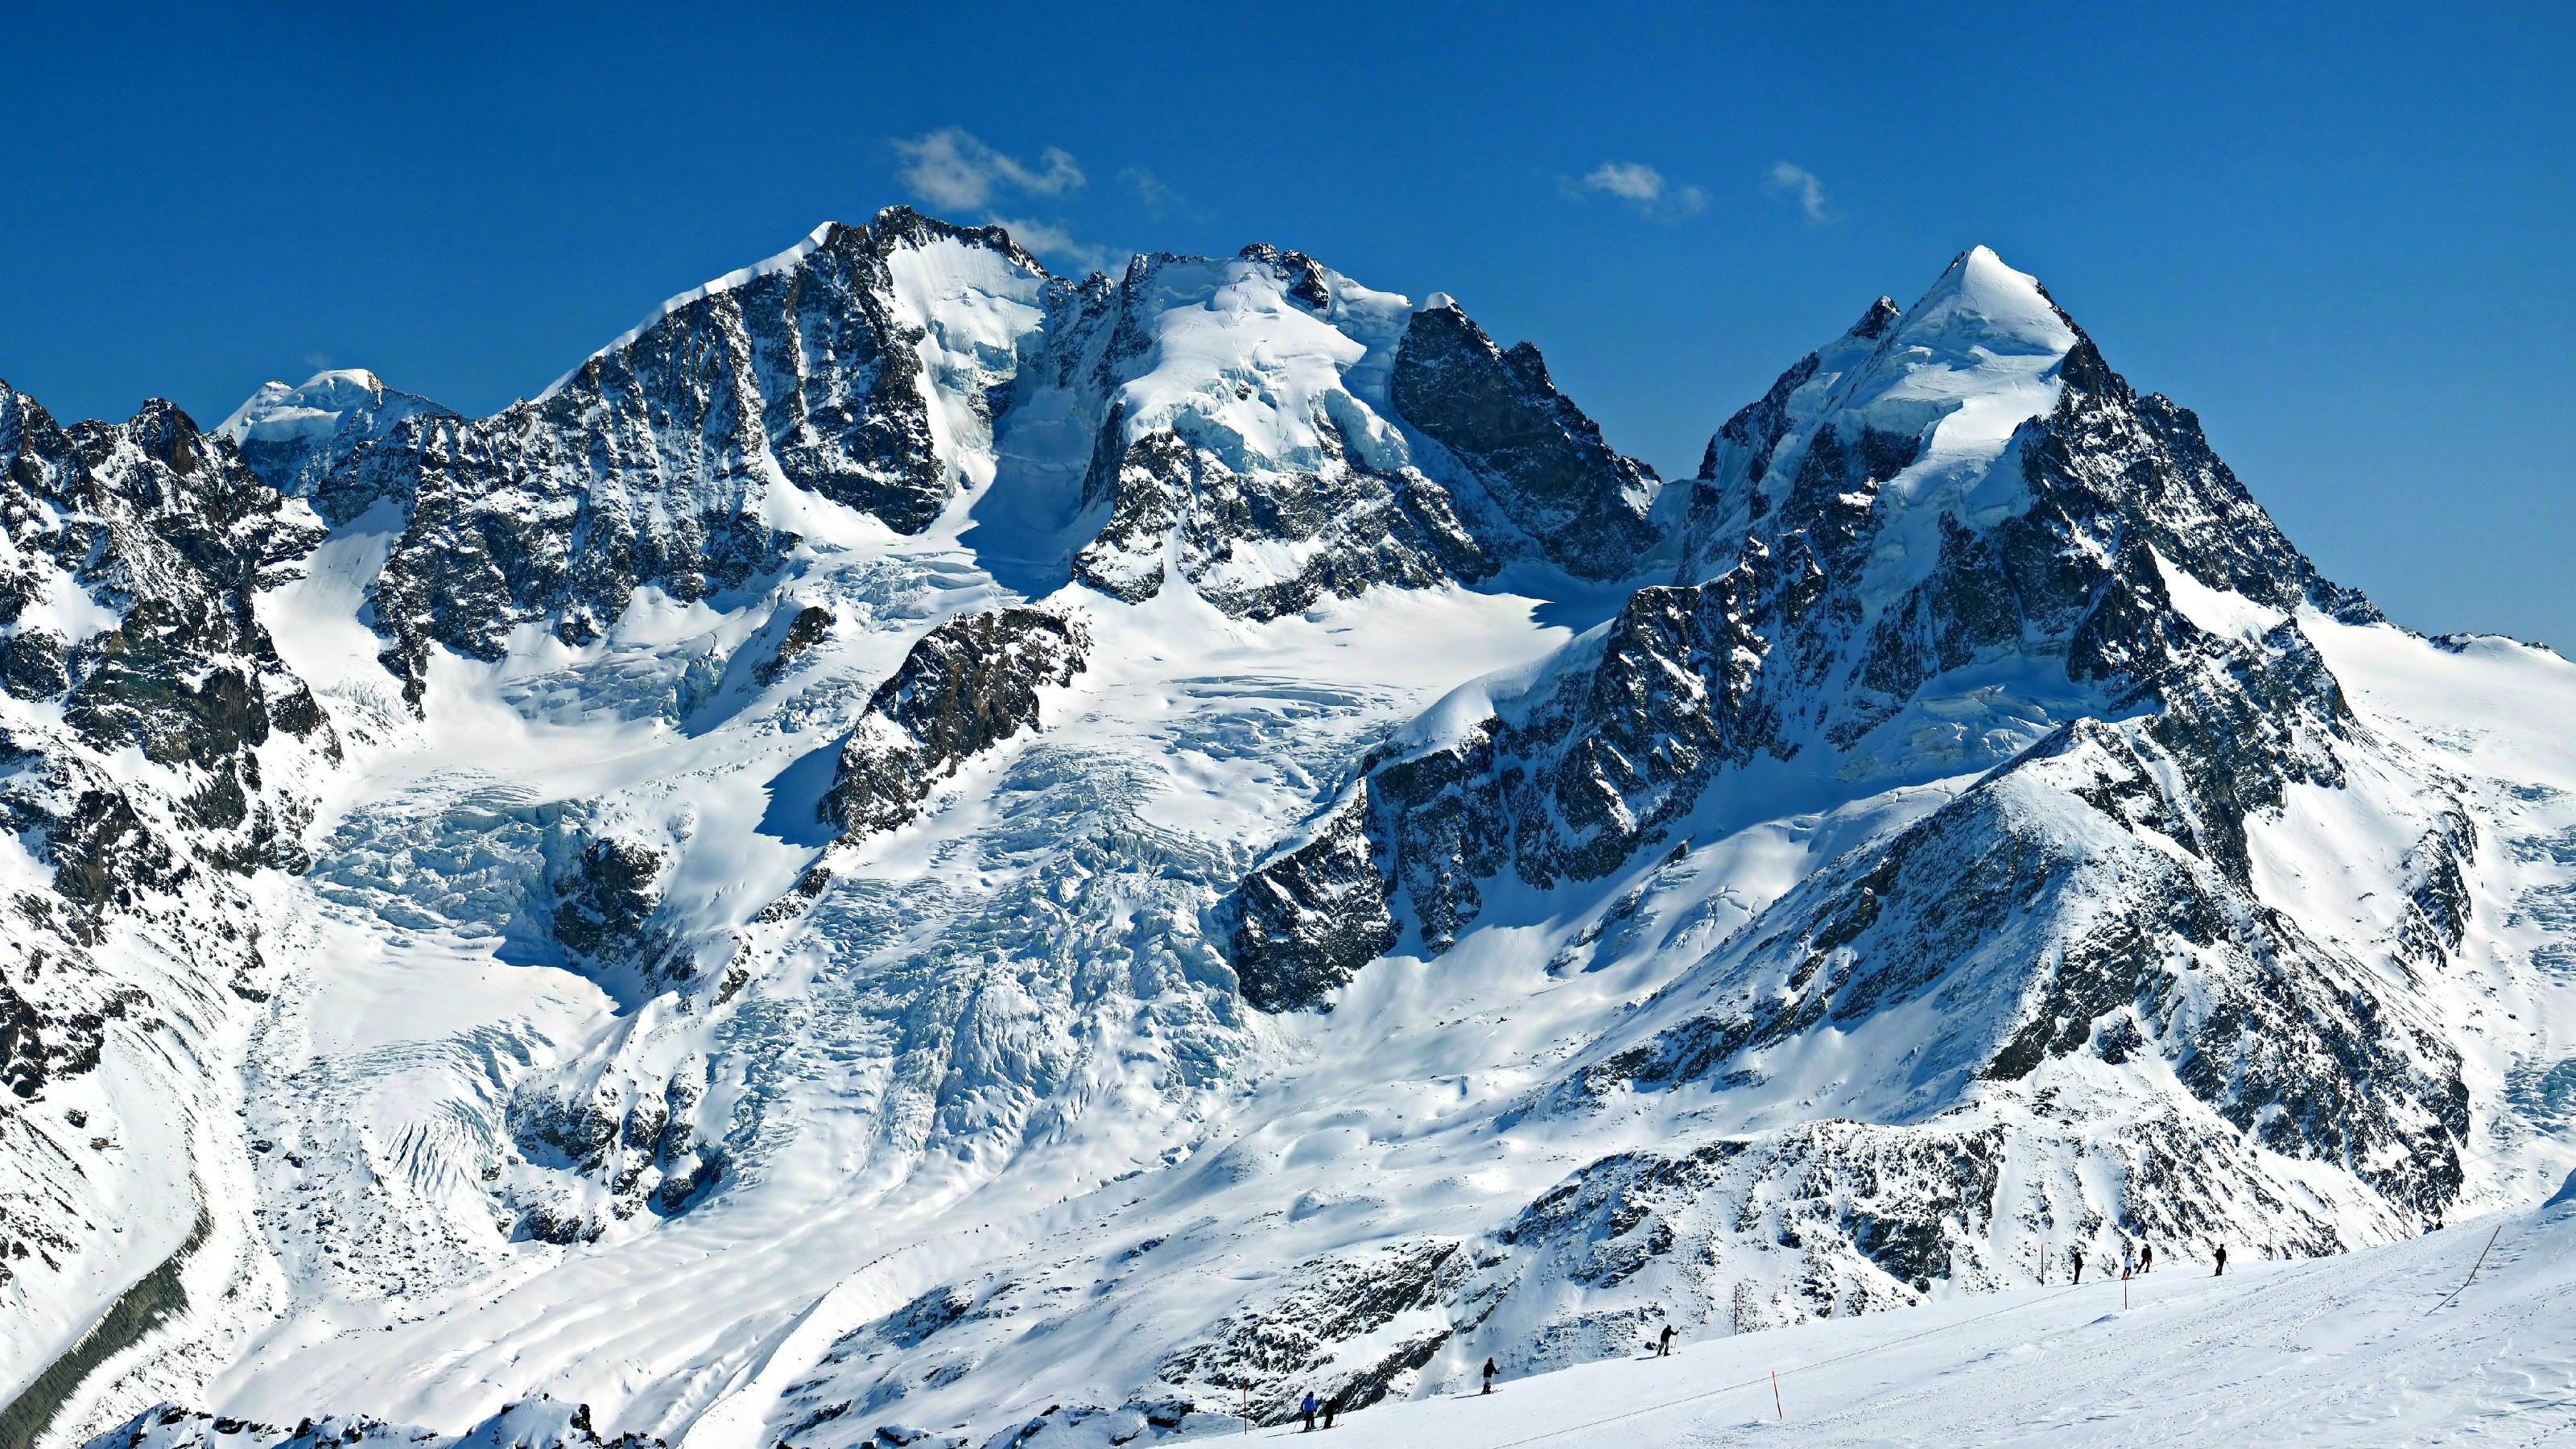 3200x1800 Gebirge HD Wallpaper | Hintergrund |  | ID:692378 - Wallpaper Abyss